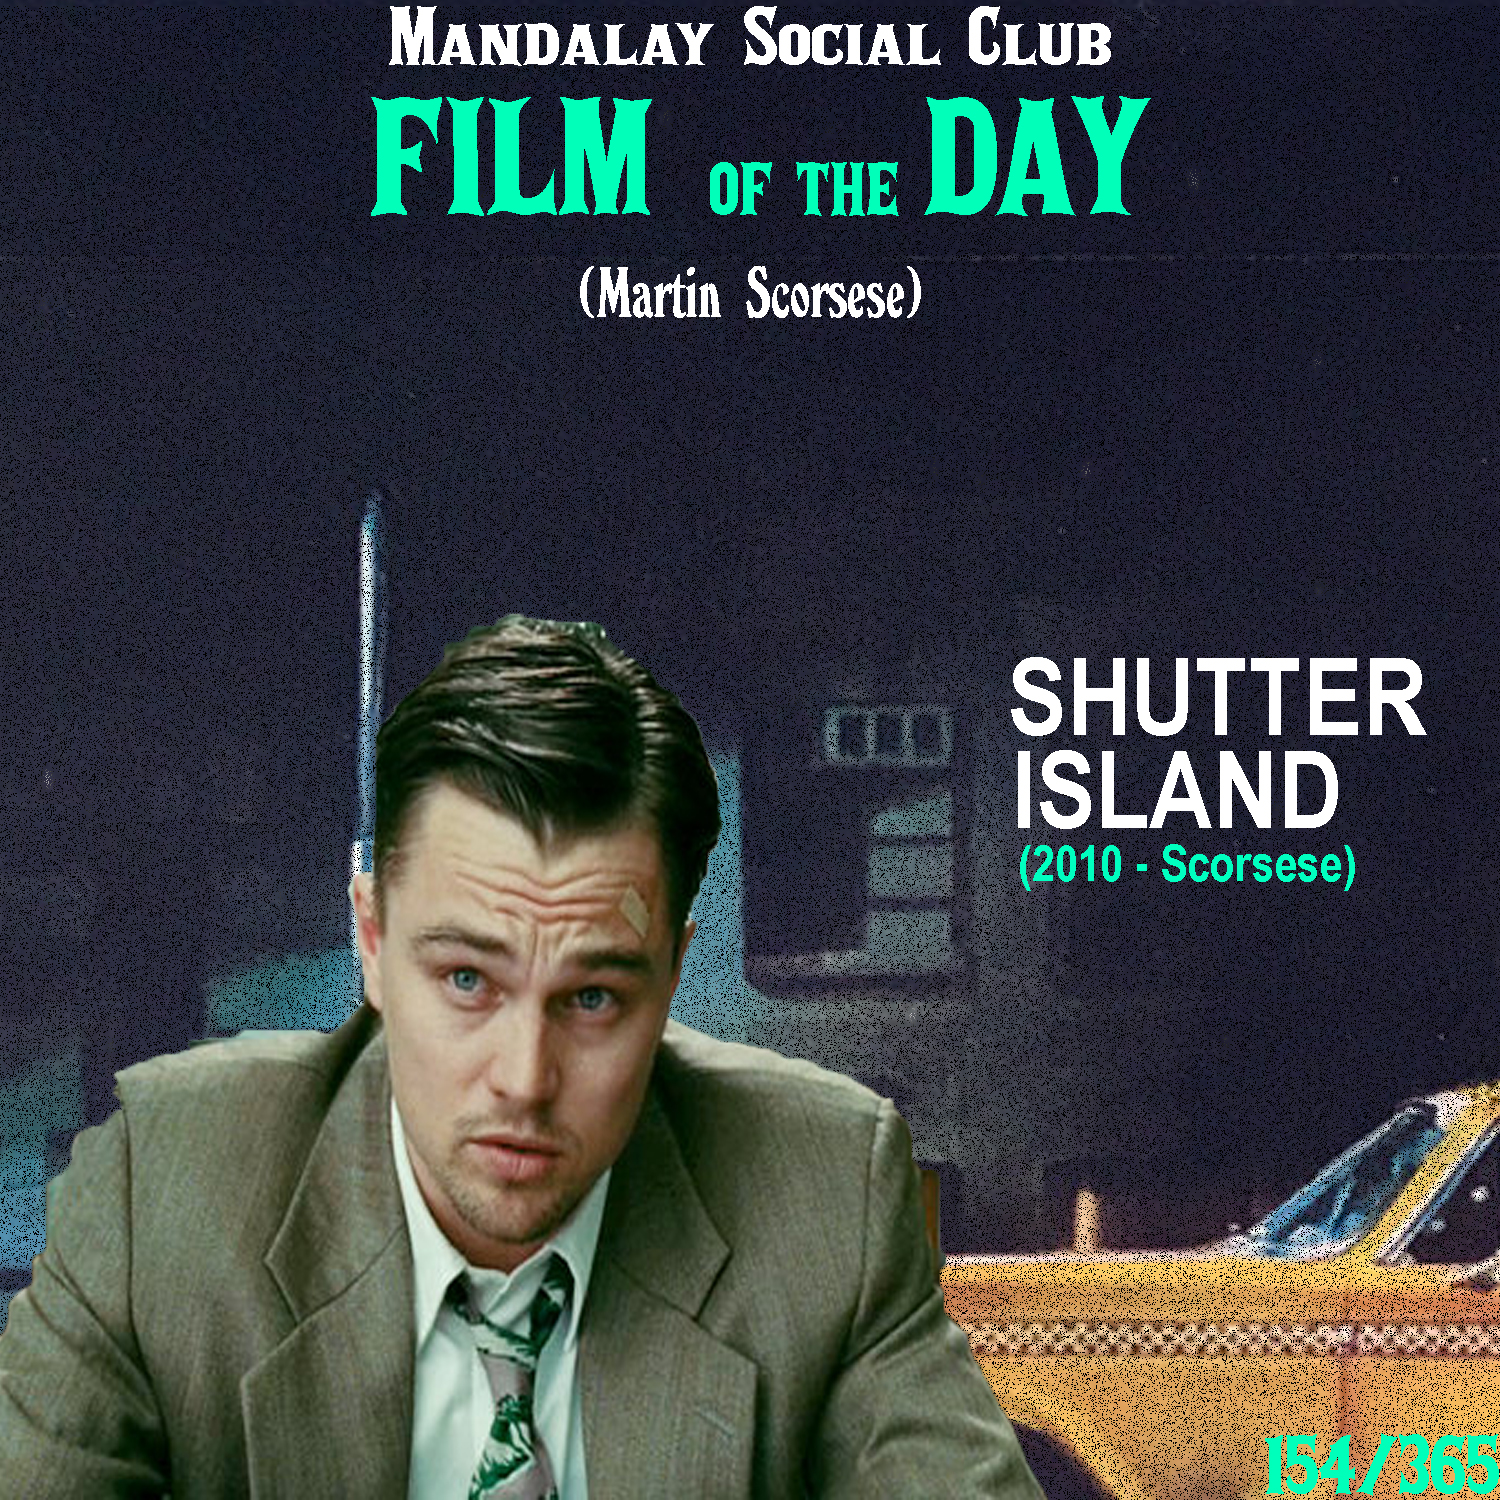 SHUTTER ISLAND     (dir Martin Scorsese)    Shutter Island  is very much Scorsese's take on a   Hitchcockian concept and it plays out just like a film from the master of suspense!  Leonardo DiCaprio stars in his 4th role for Martin Scorsese as Teddy Daniels, an investigator who sails over to Shutter Island, a menacing mental hospital housing the most dangerous and mentally unstable criminals. he arrives to investigate the disappearance of a vicious murderer, but while there Teddy begins to slowly realize that he might have been led on a wild goose chase.  This is one of the films that constantly captivates me because no matter how many times you watch it, you always find something new. Scorsese was perhaps most attentive to details in this film and it takes the role as one of Scorsese's most psychological pictures. While all the twists make for one great shock the first time only, the whole adventure that is  Shutter Island  only grows more and more enticing with each viewing.    5/5     WATCH: Hulu